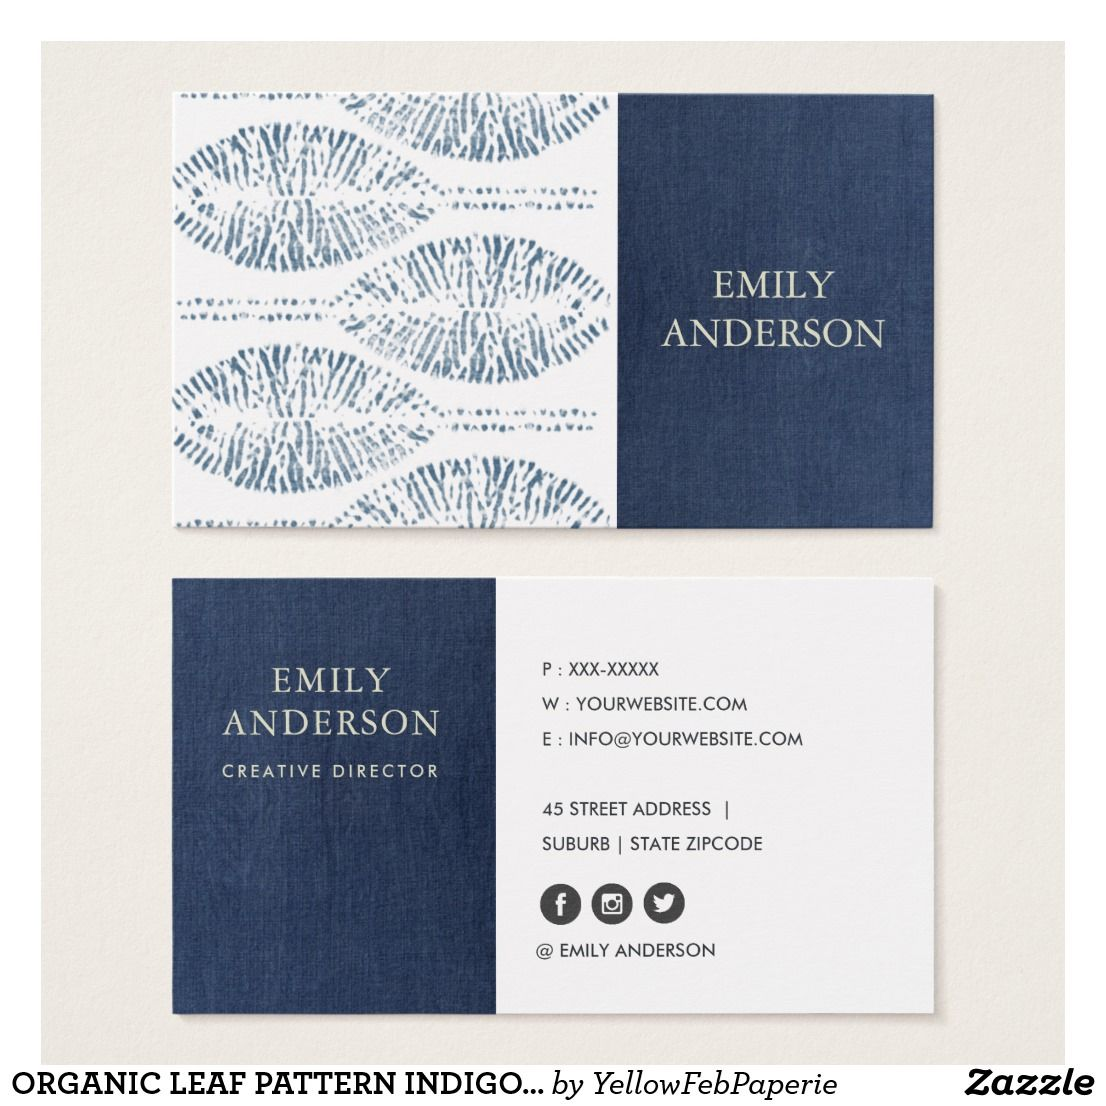 Organic leaf pattern indigo blue tie dye batik business card | Blue ...